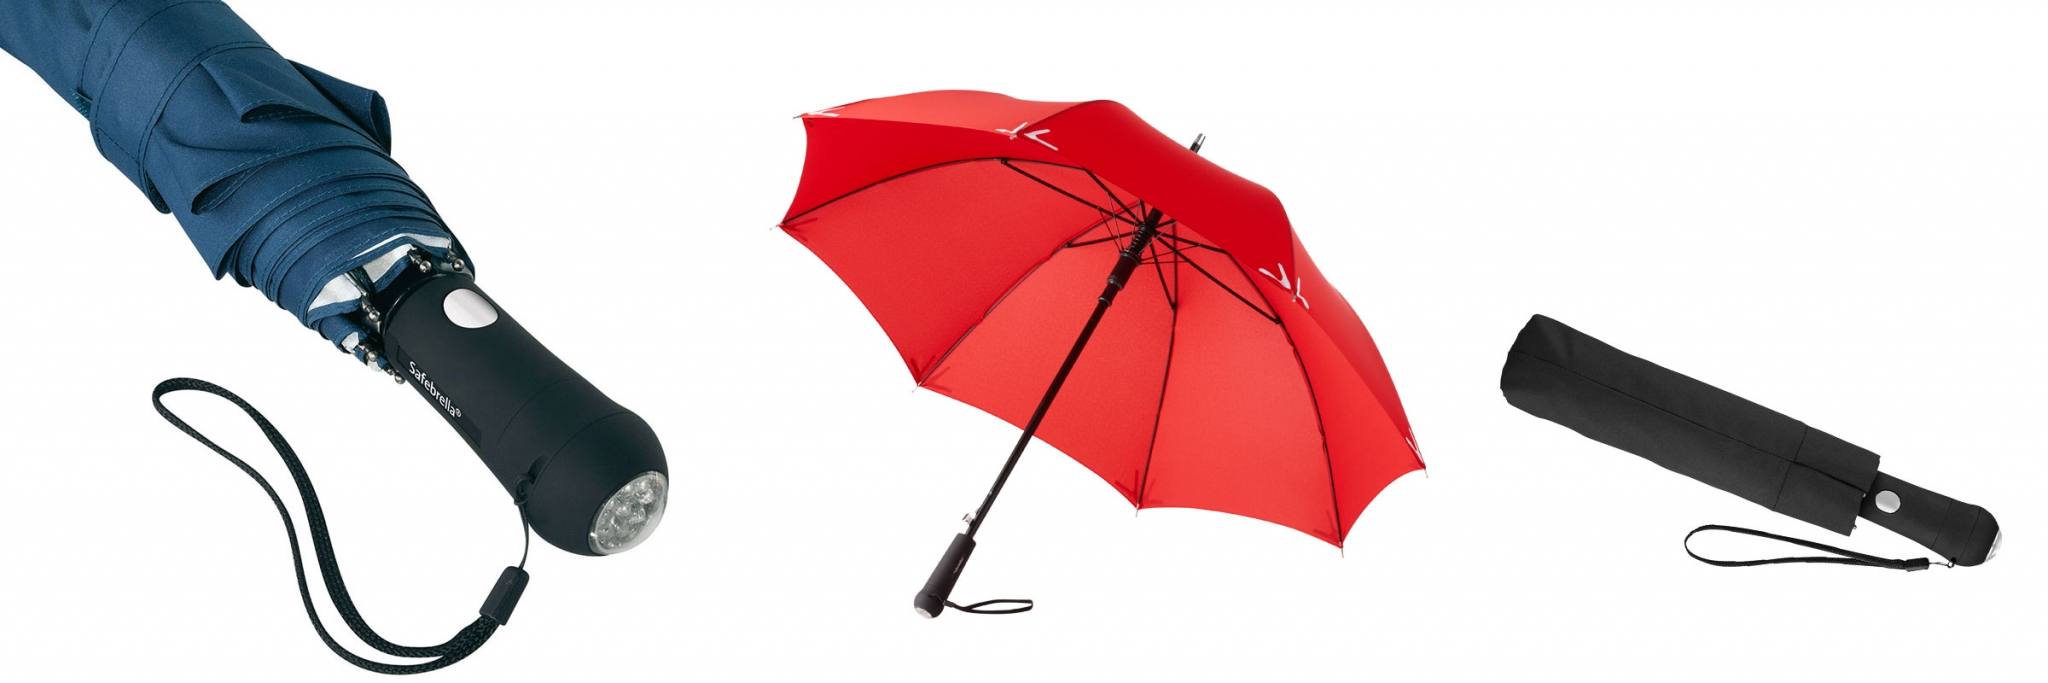 PROMOTIONAL BRANDED UMBRELLA WITH LED TORCH